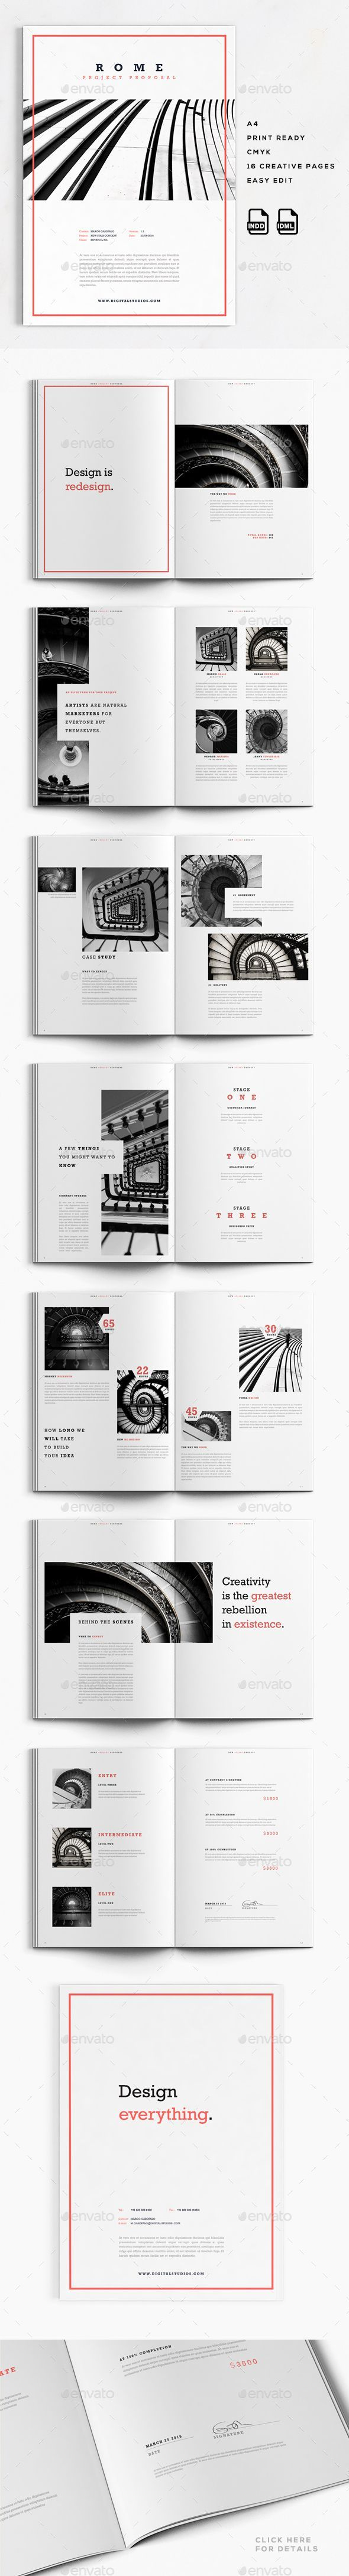 Rome | A4 Creative Business Proposal Template InDesign INDD. Download here: http://graphicriver.net/item/rome-a4-creative-business-proposal/15583492?ref=ksioks